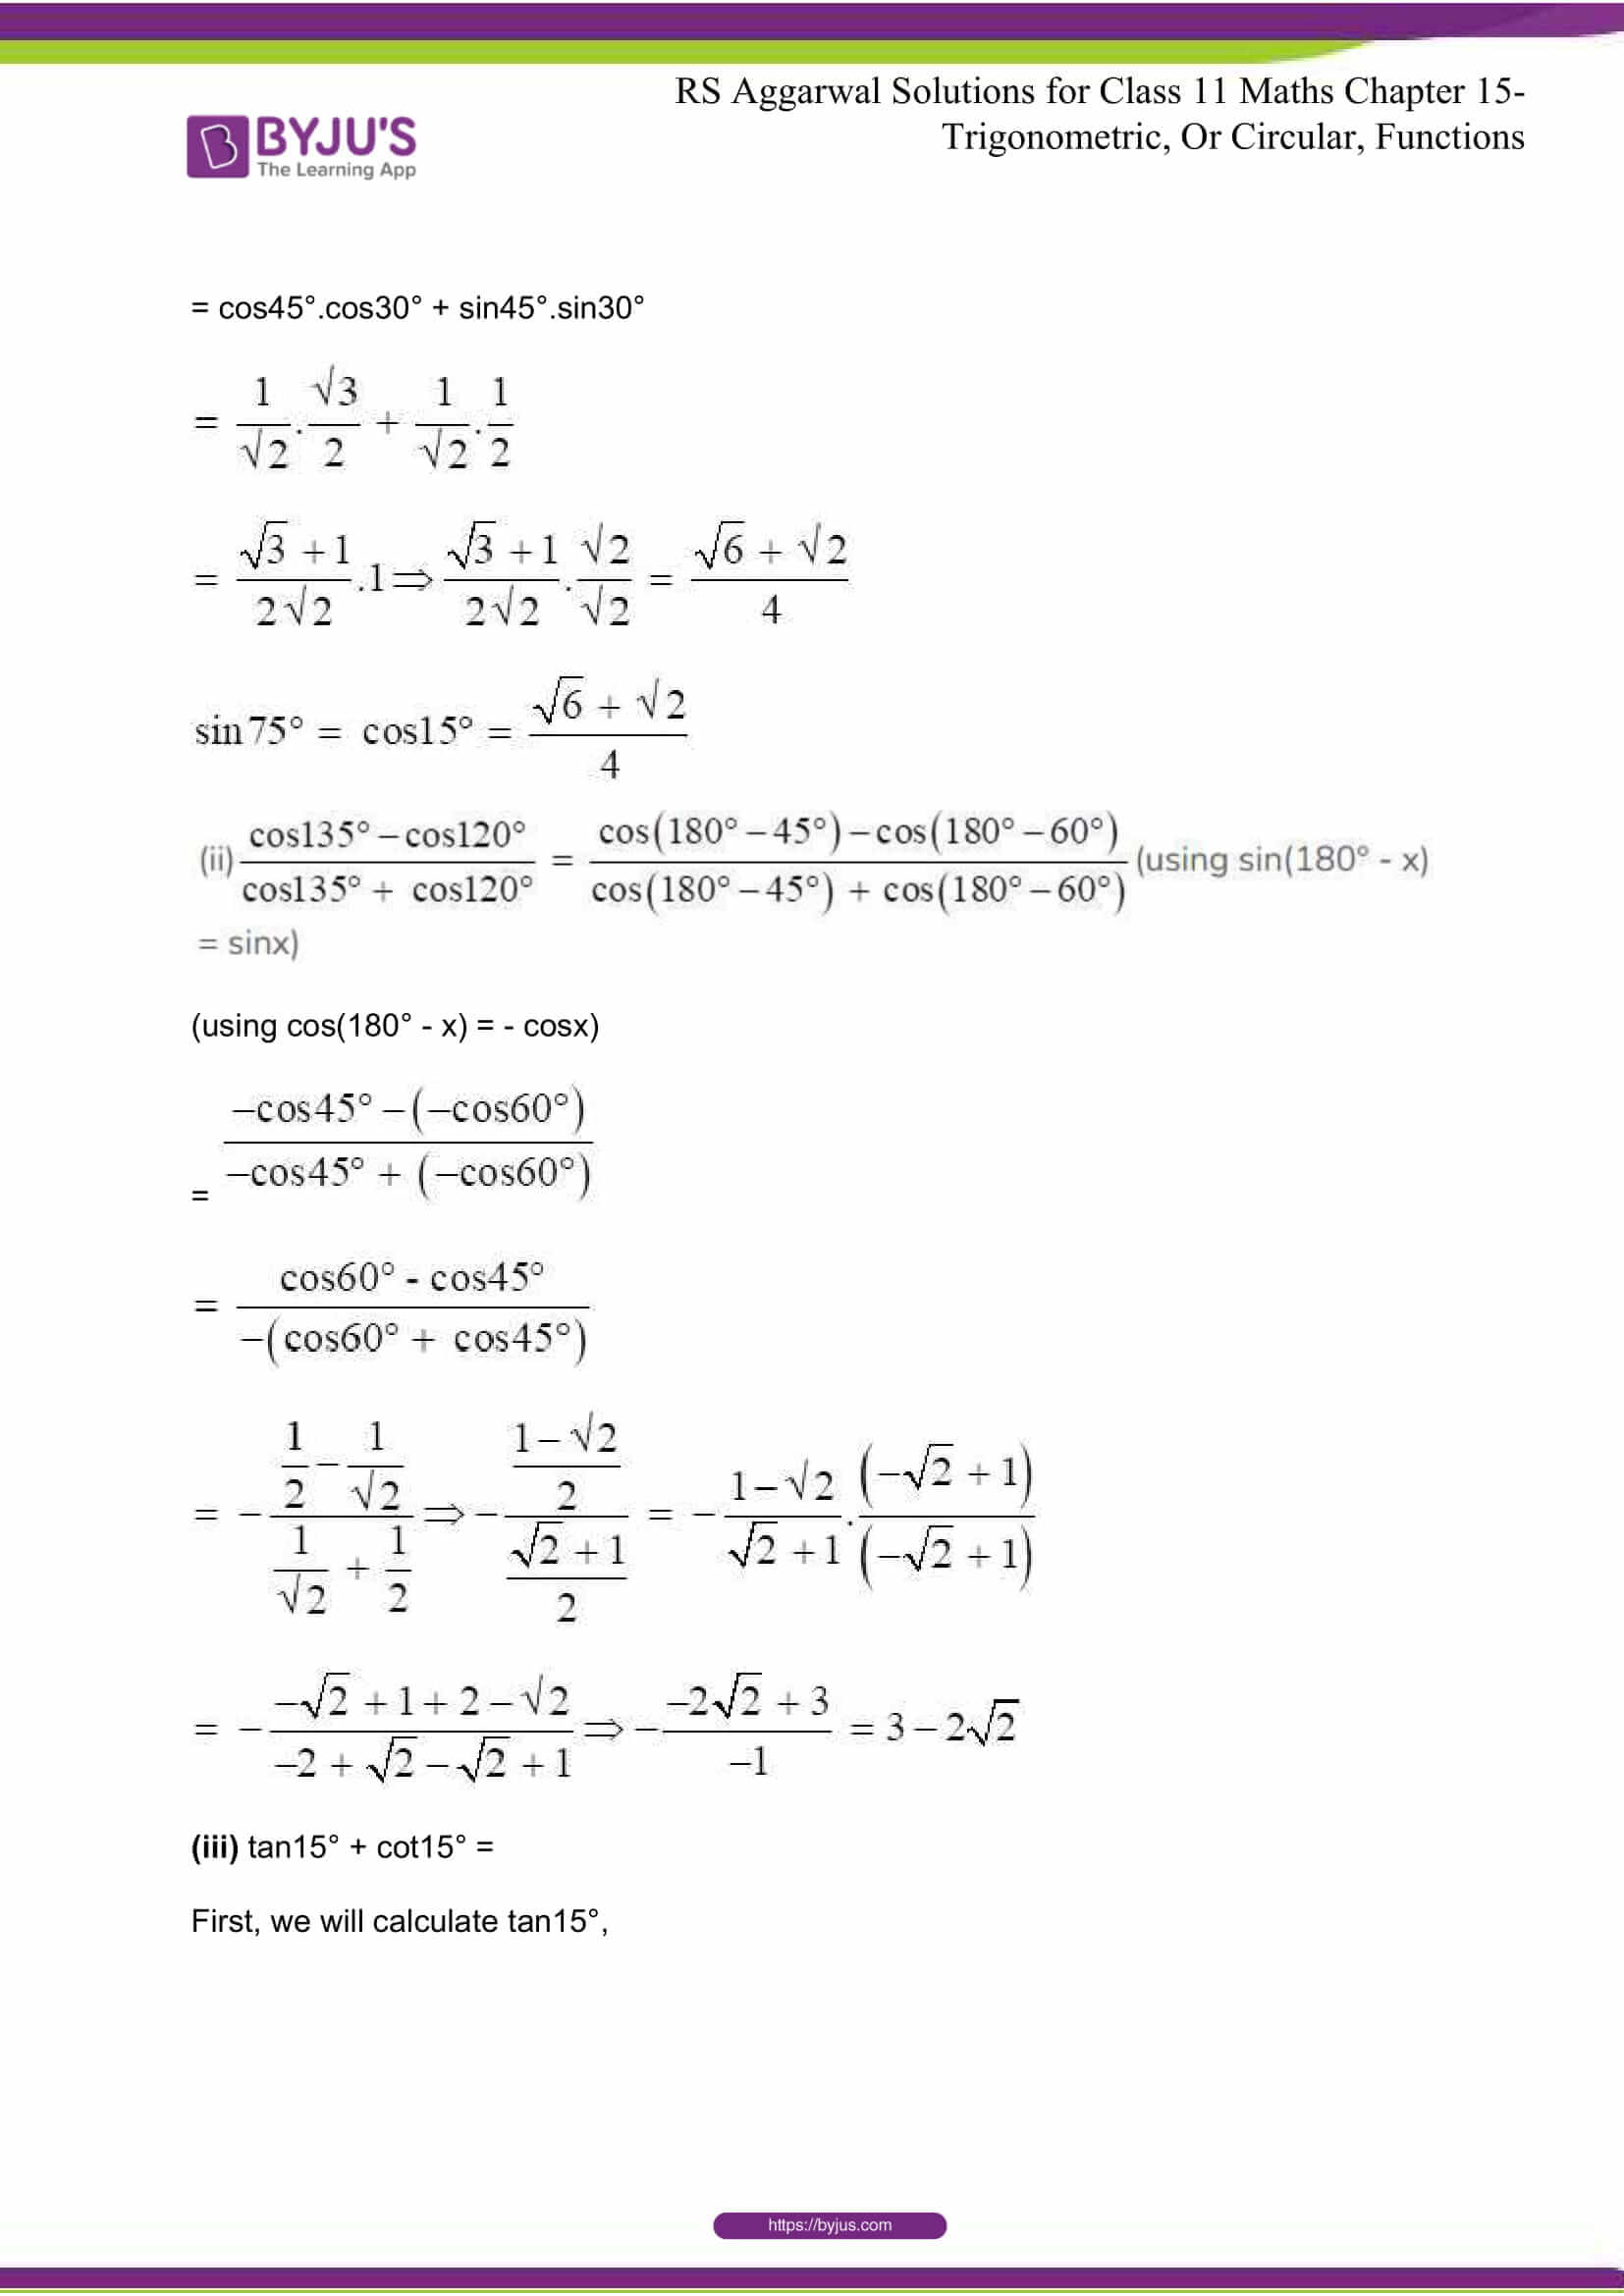 rsaggarwal solutions class 11 maths chapter 15 037